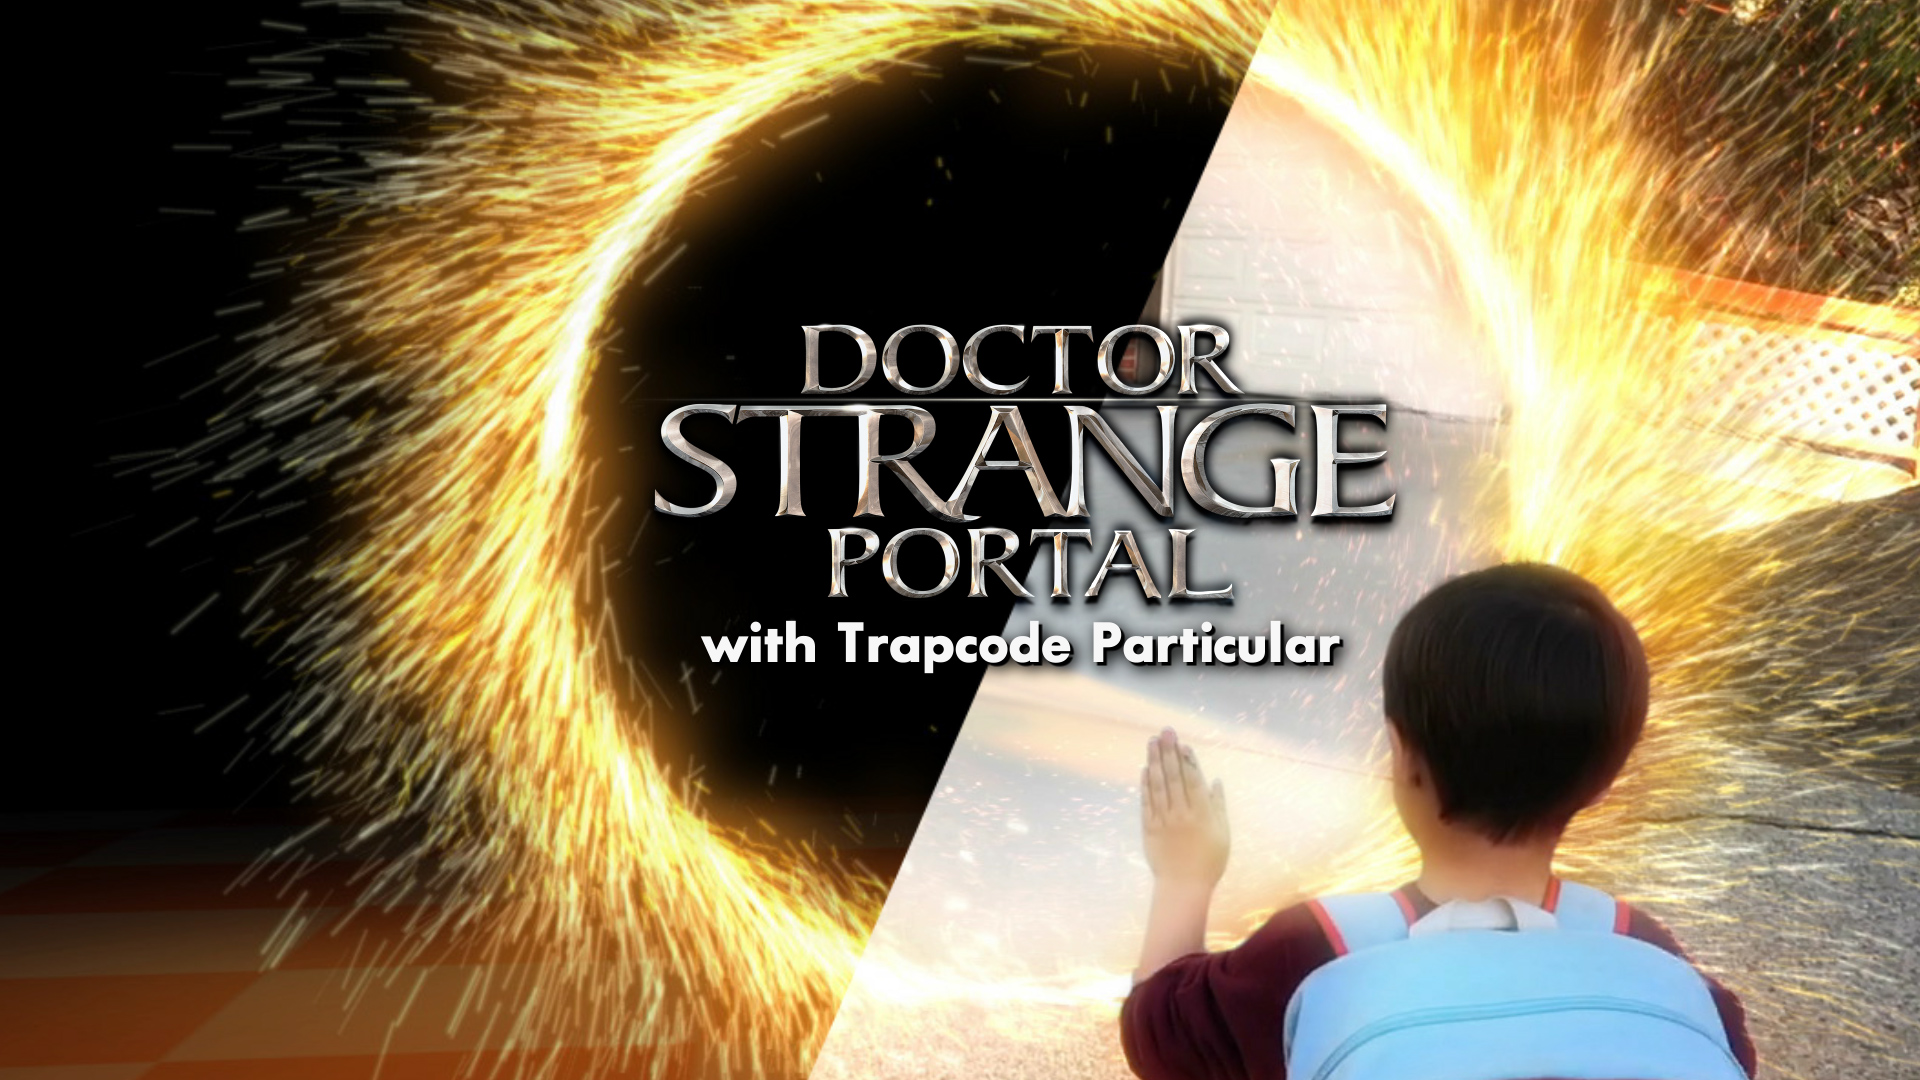 Dr. Strange Portal Effect with Trapcode Particular